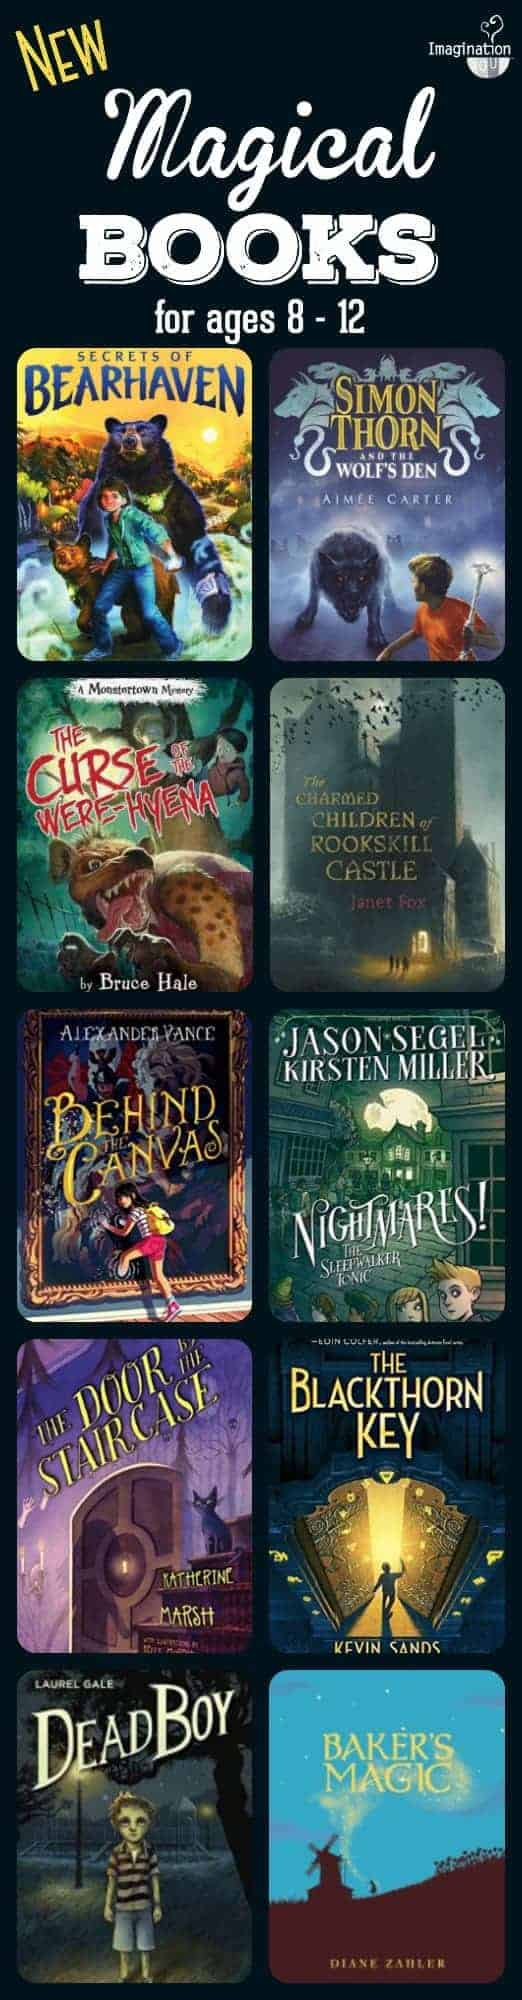 10 new magical books for middle grade readers in elementary ages 8 to 12